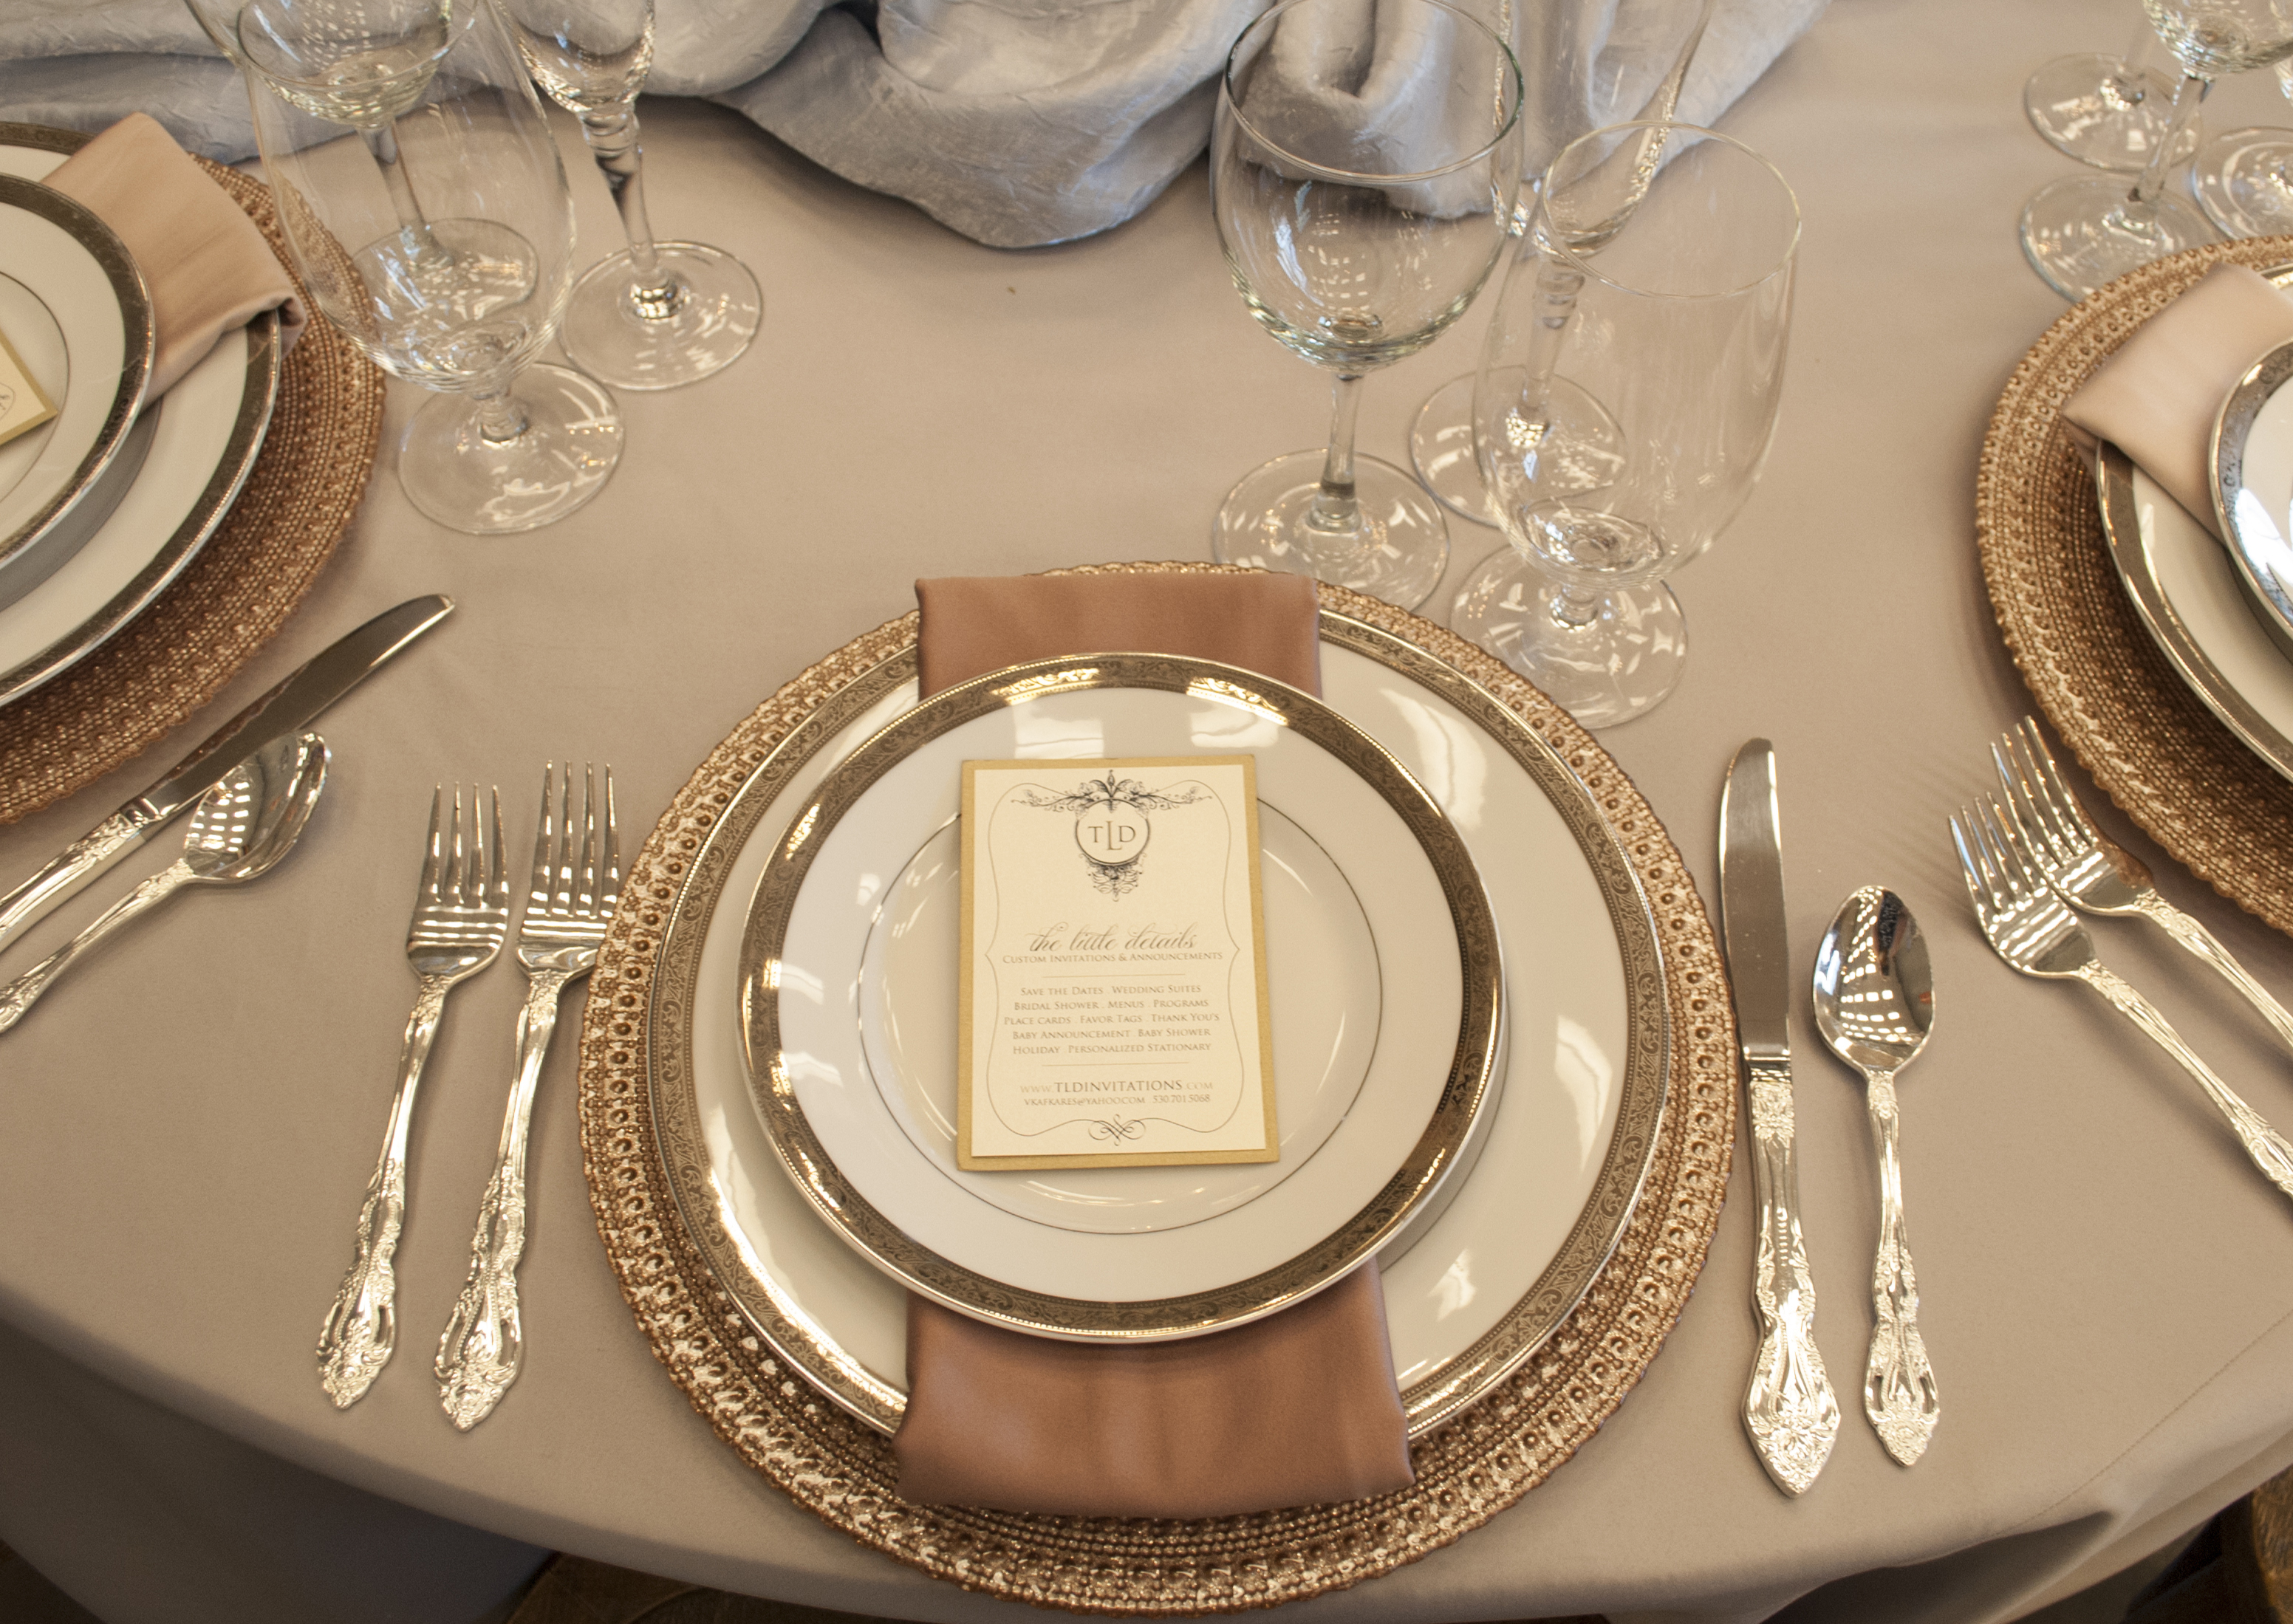 Or make it more romantic by using Ava Blush Chargers with Royce Silver Flatware and soft grey linens. & Romantic.jpg